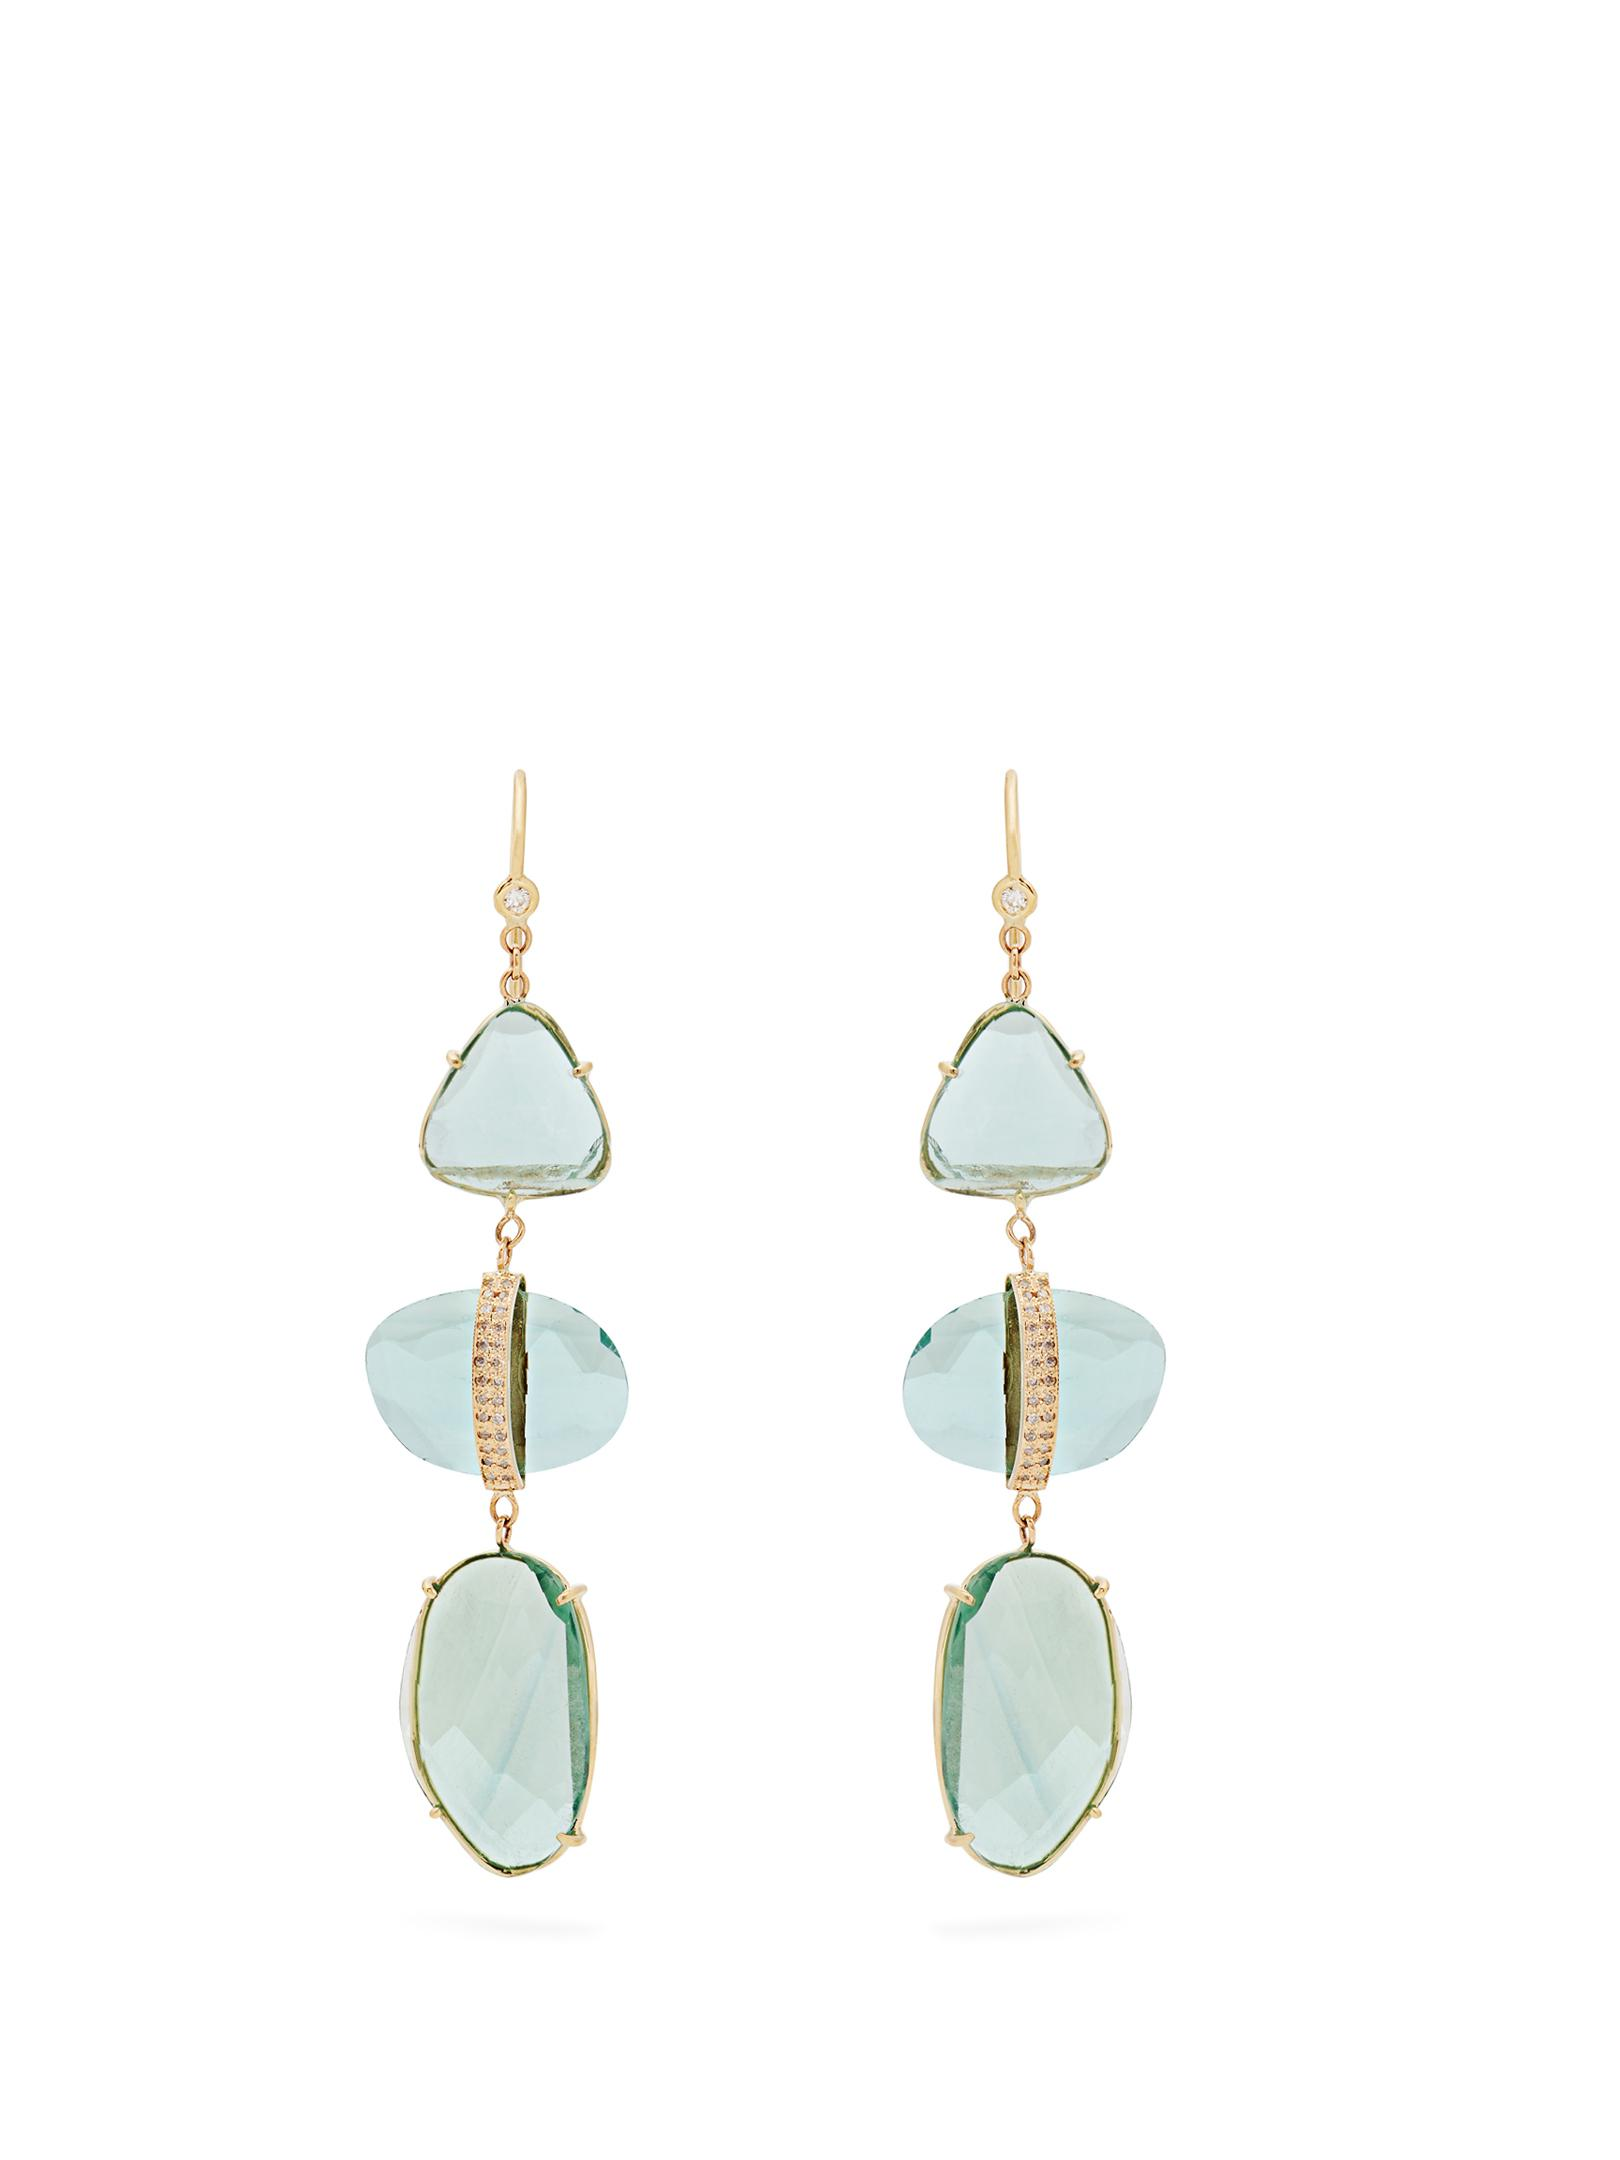 Diamond, labradorite & yellow-gold earrings Jacquie Aiche